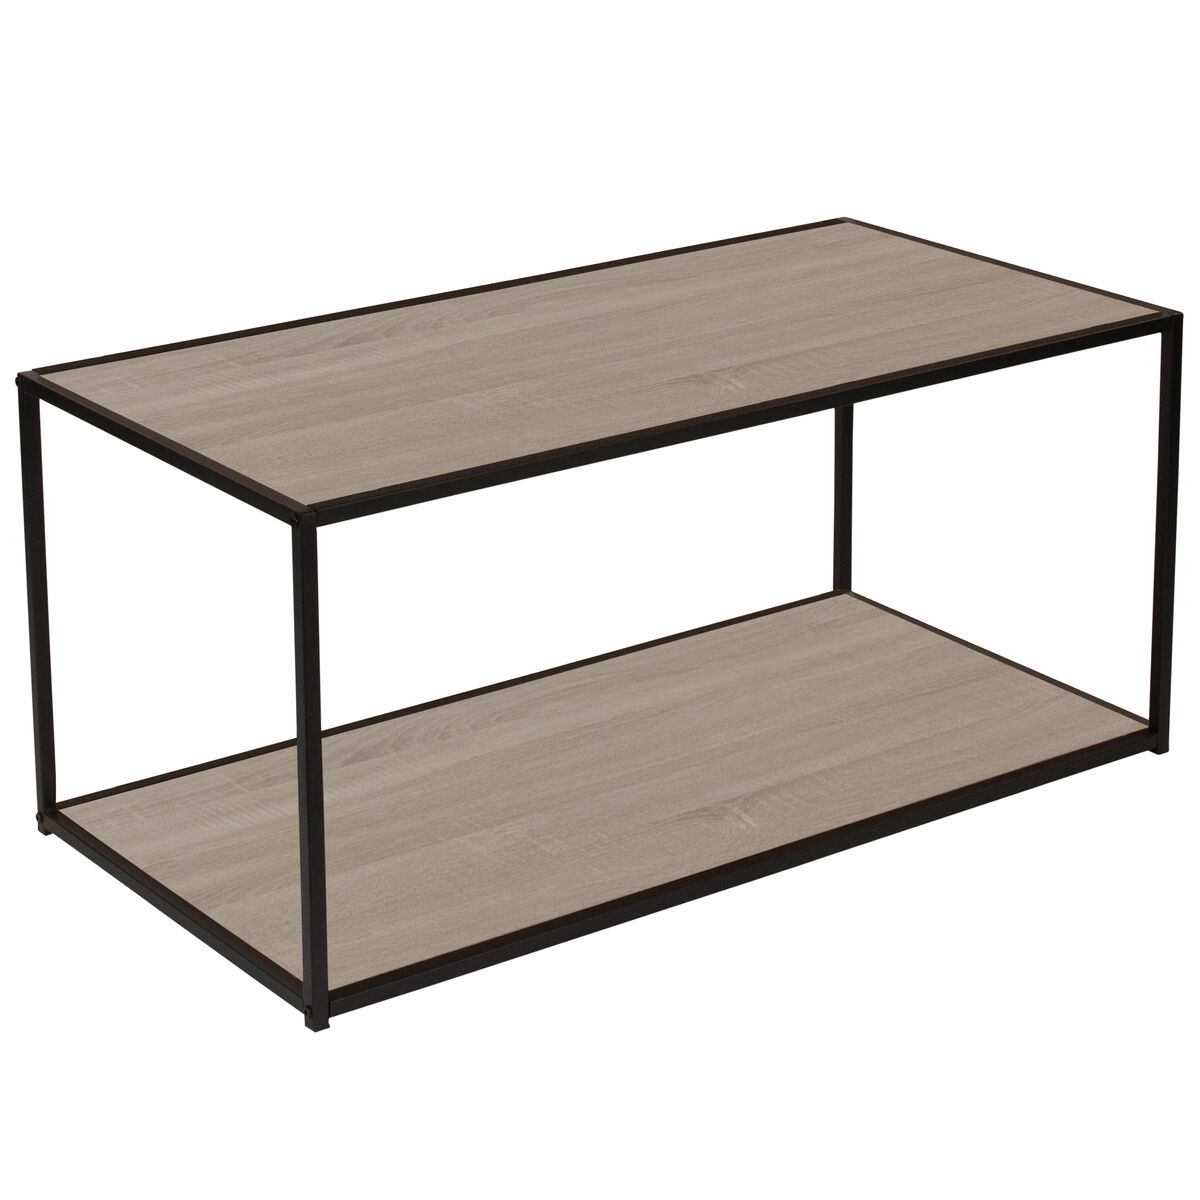 Our Midtown Collection Sonoma Oak Wood Grain Finish Coffee Table With Black Metal Frame Is On